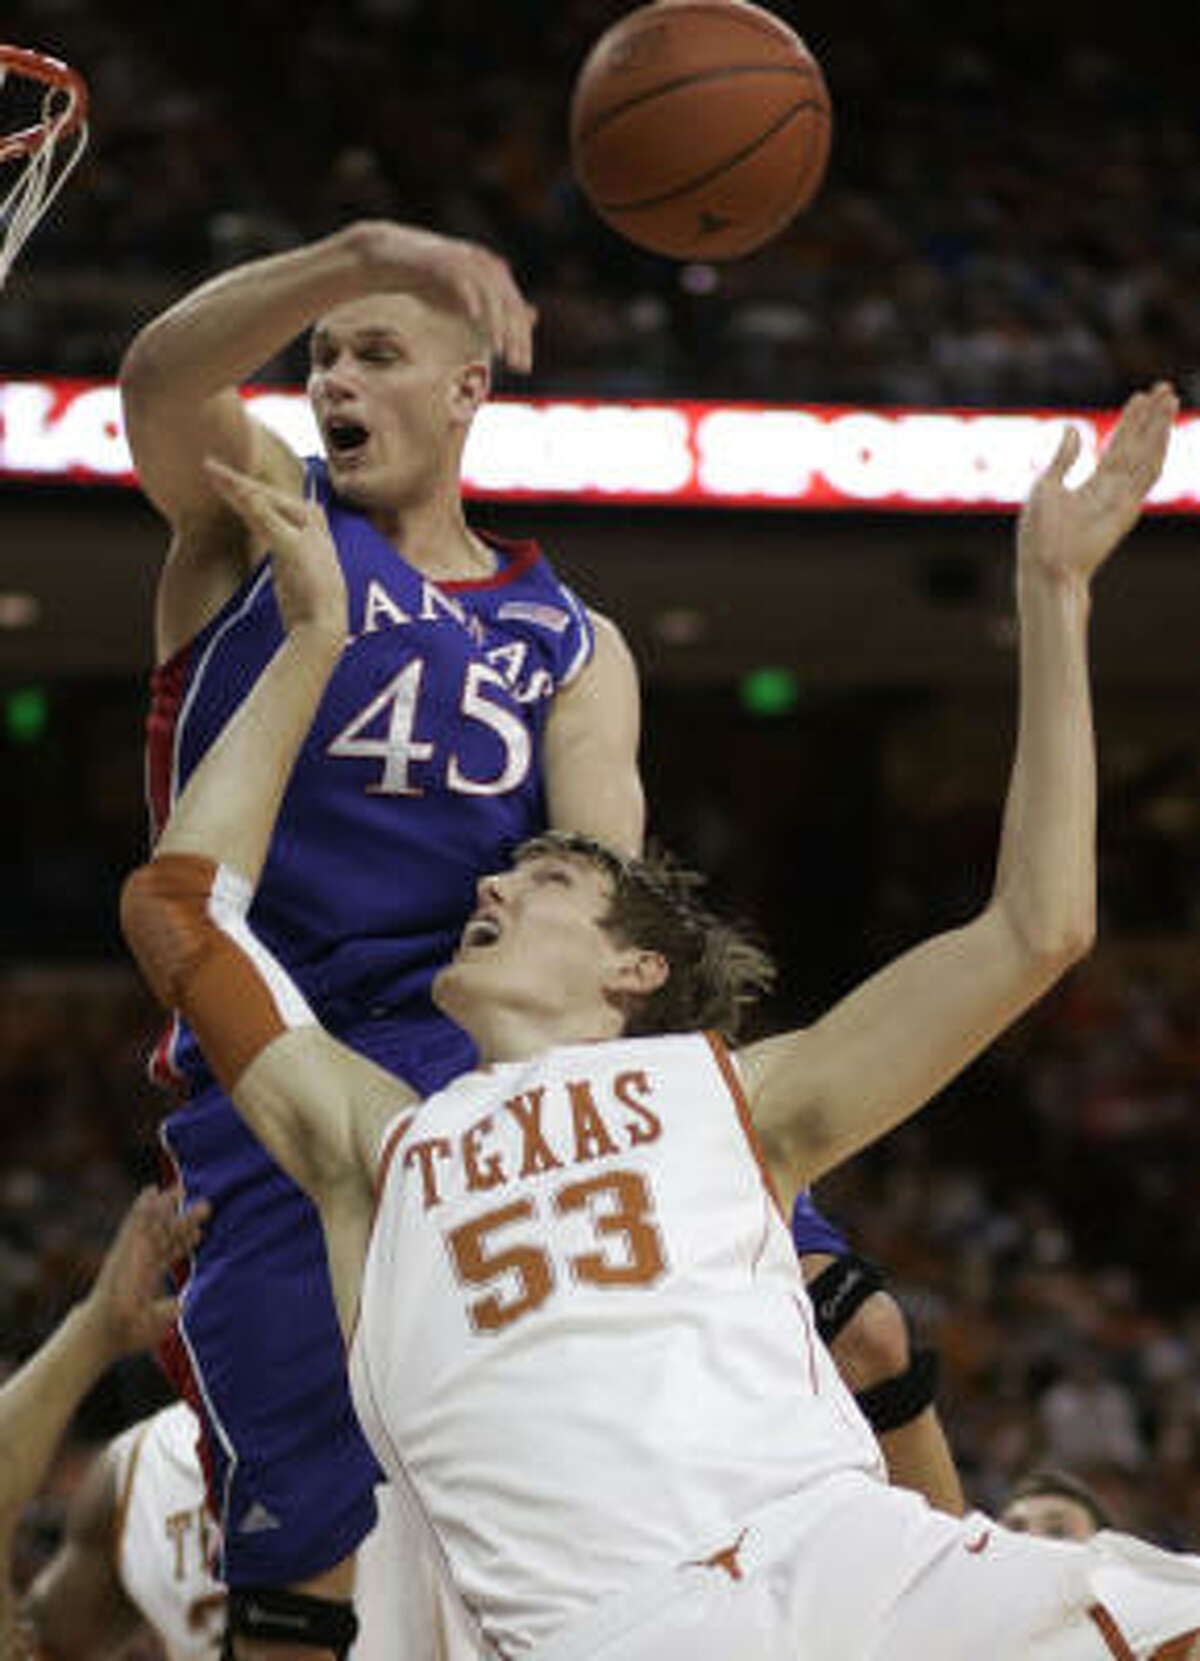 Kansas center Cole Aldrich turns away the shot of Texas' Clint Champman for one of his six blocks.